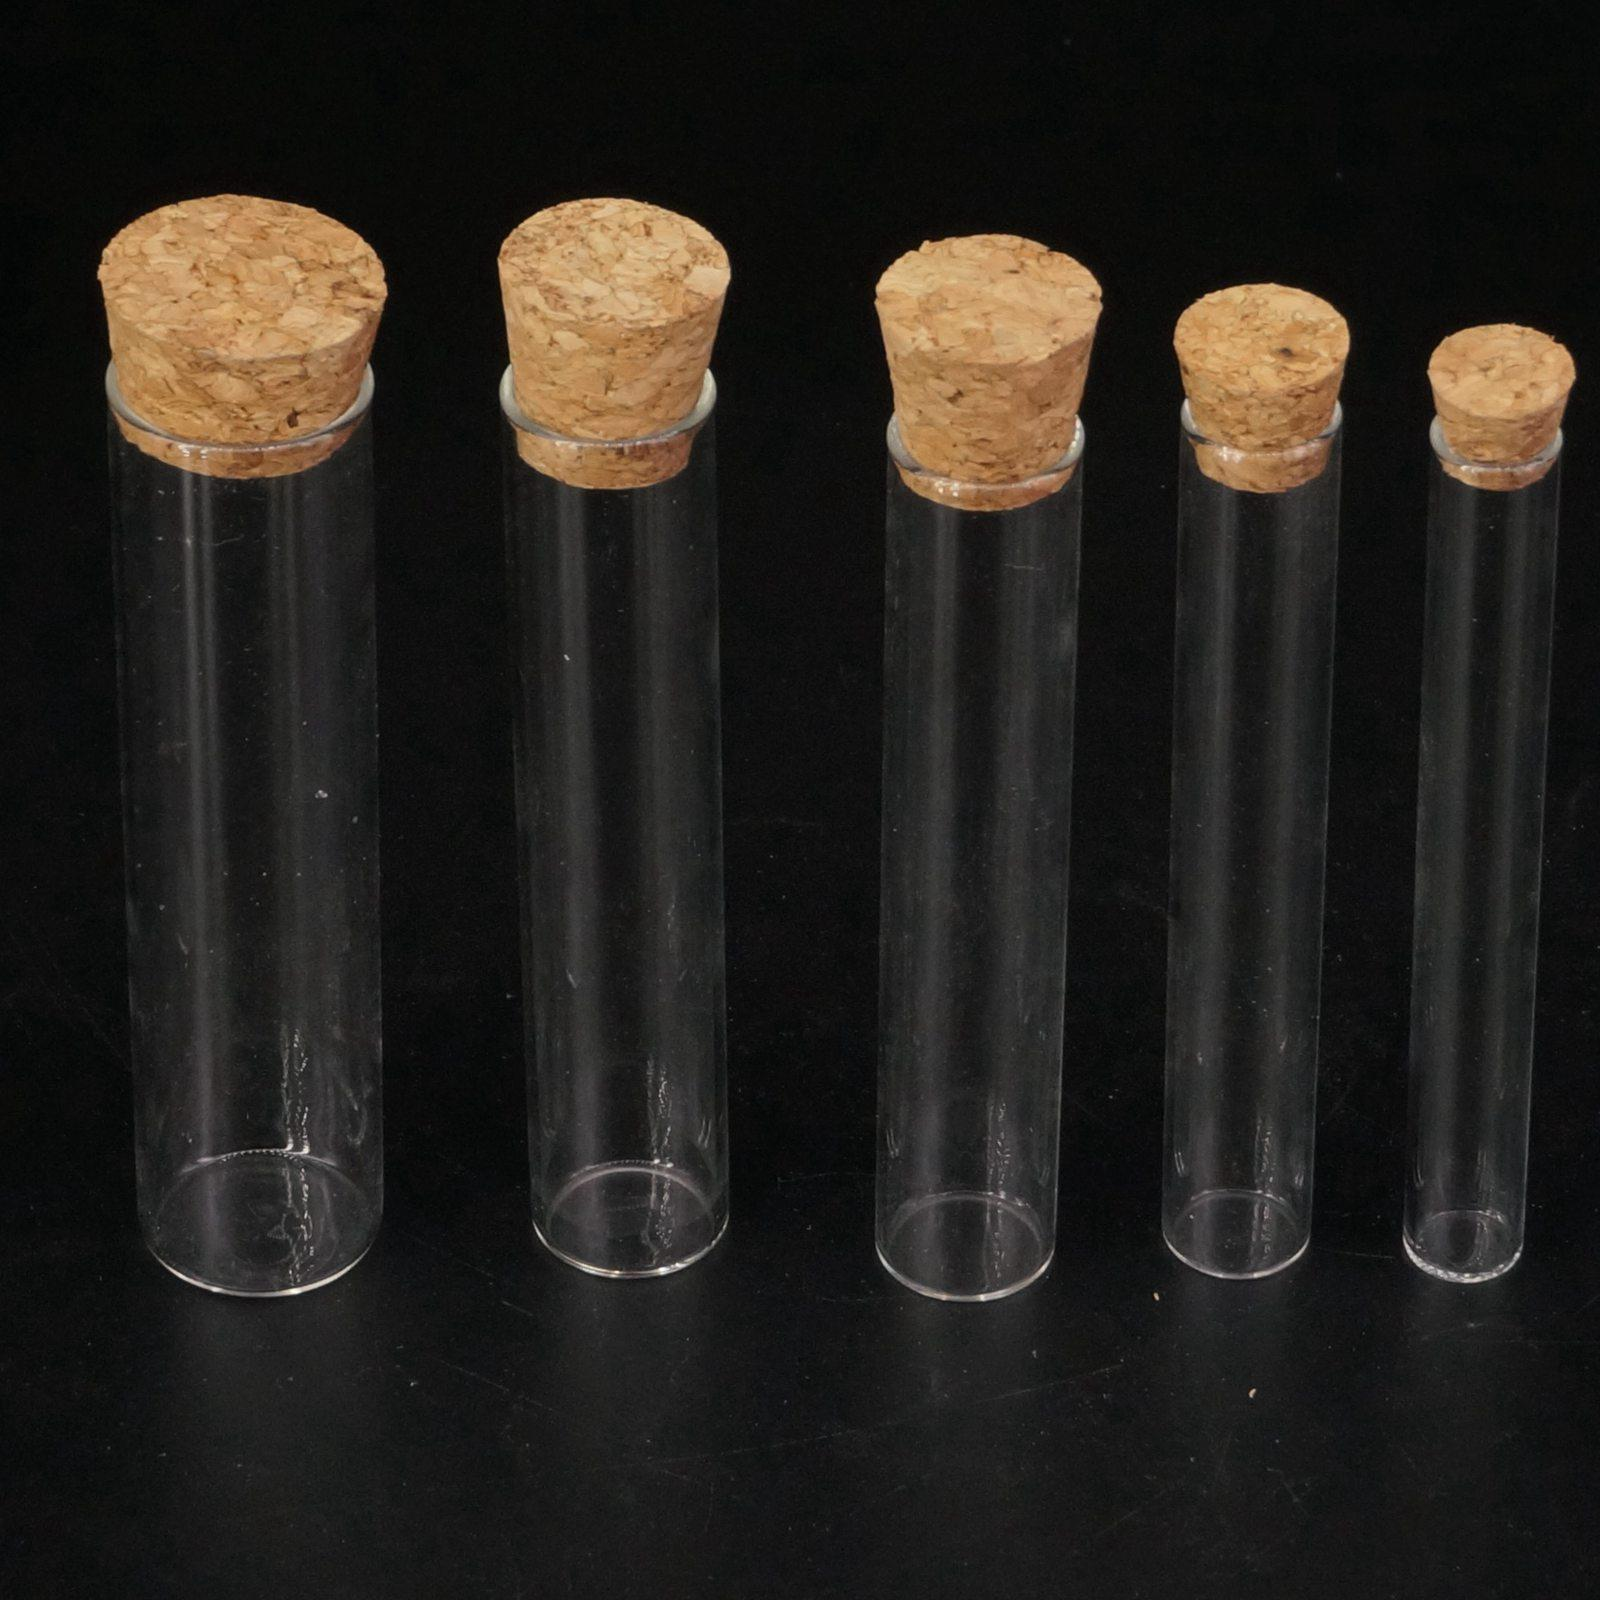 5pcs Oute Diameter 12mm 15MM 18MM 20MM 25MM 30MM 35MM 40mm Lab Glass Test Tube Flat Bottom With Wood Stopper Thermostability